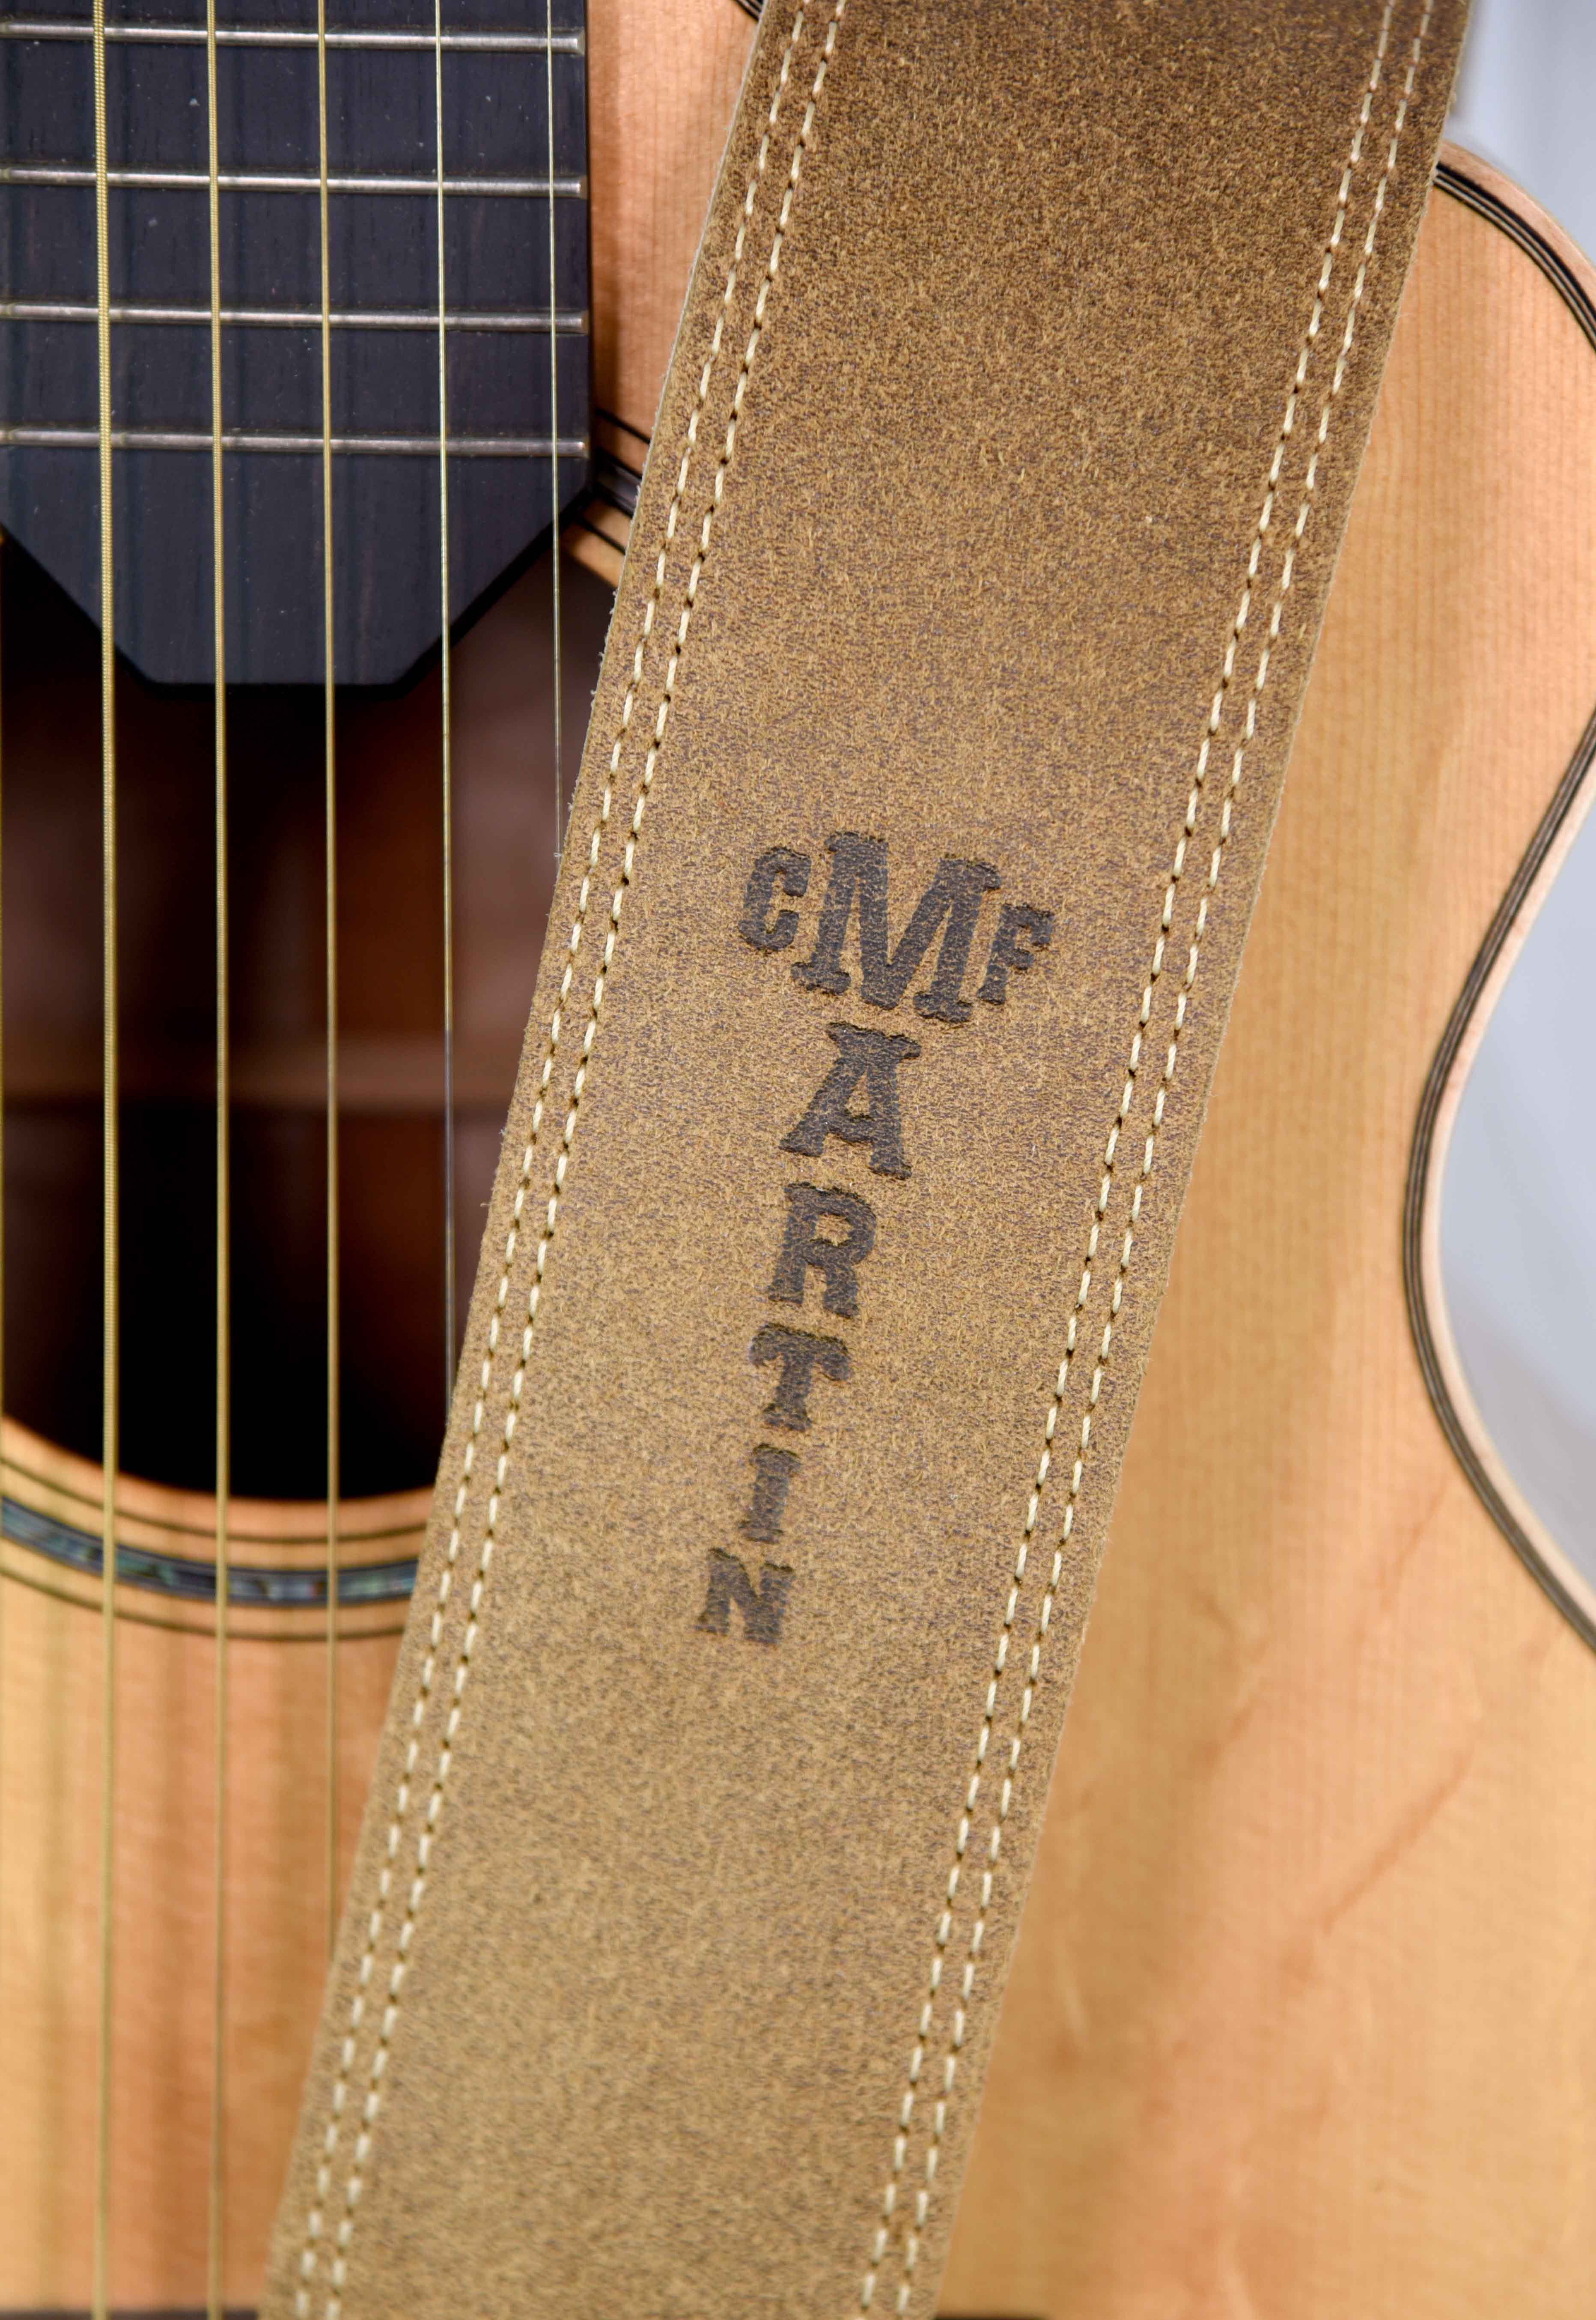 Martin Ball Leather Suede Guitar Strap Distressed Westwood Music Gitar String By Provit Musik Slm